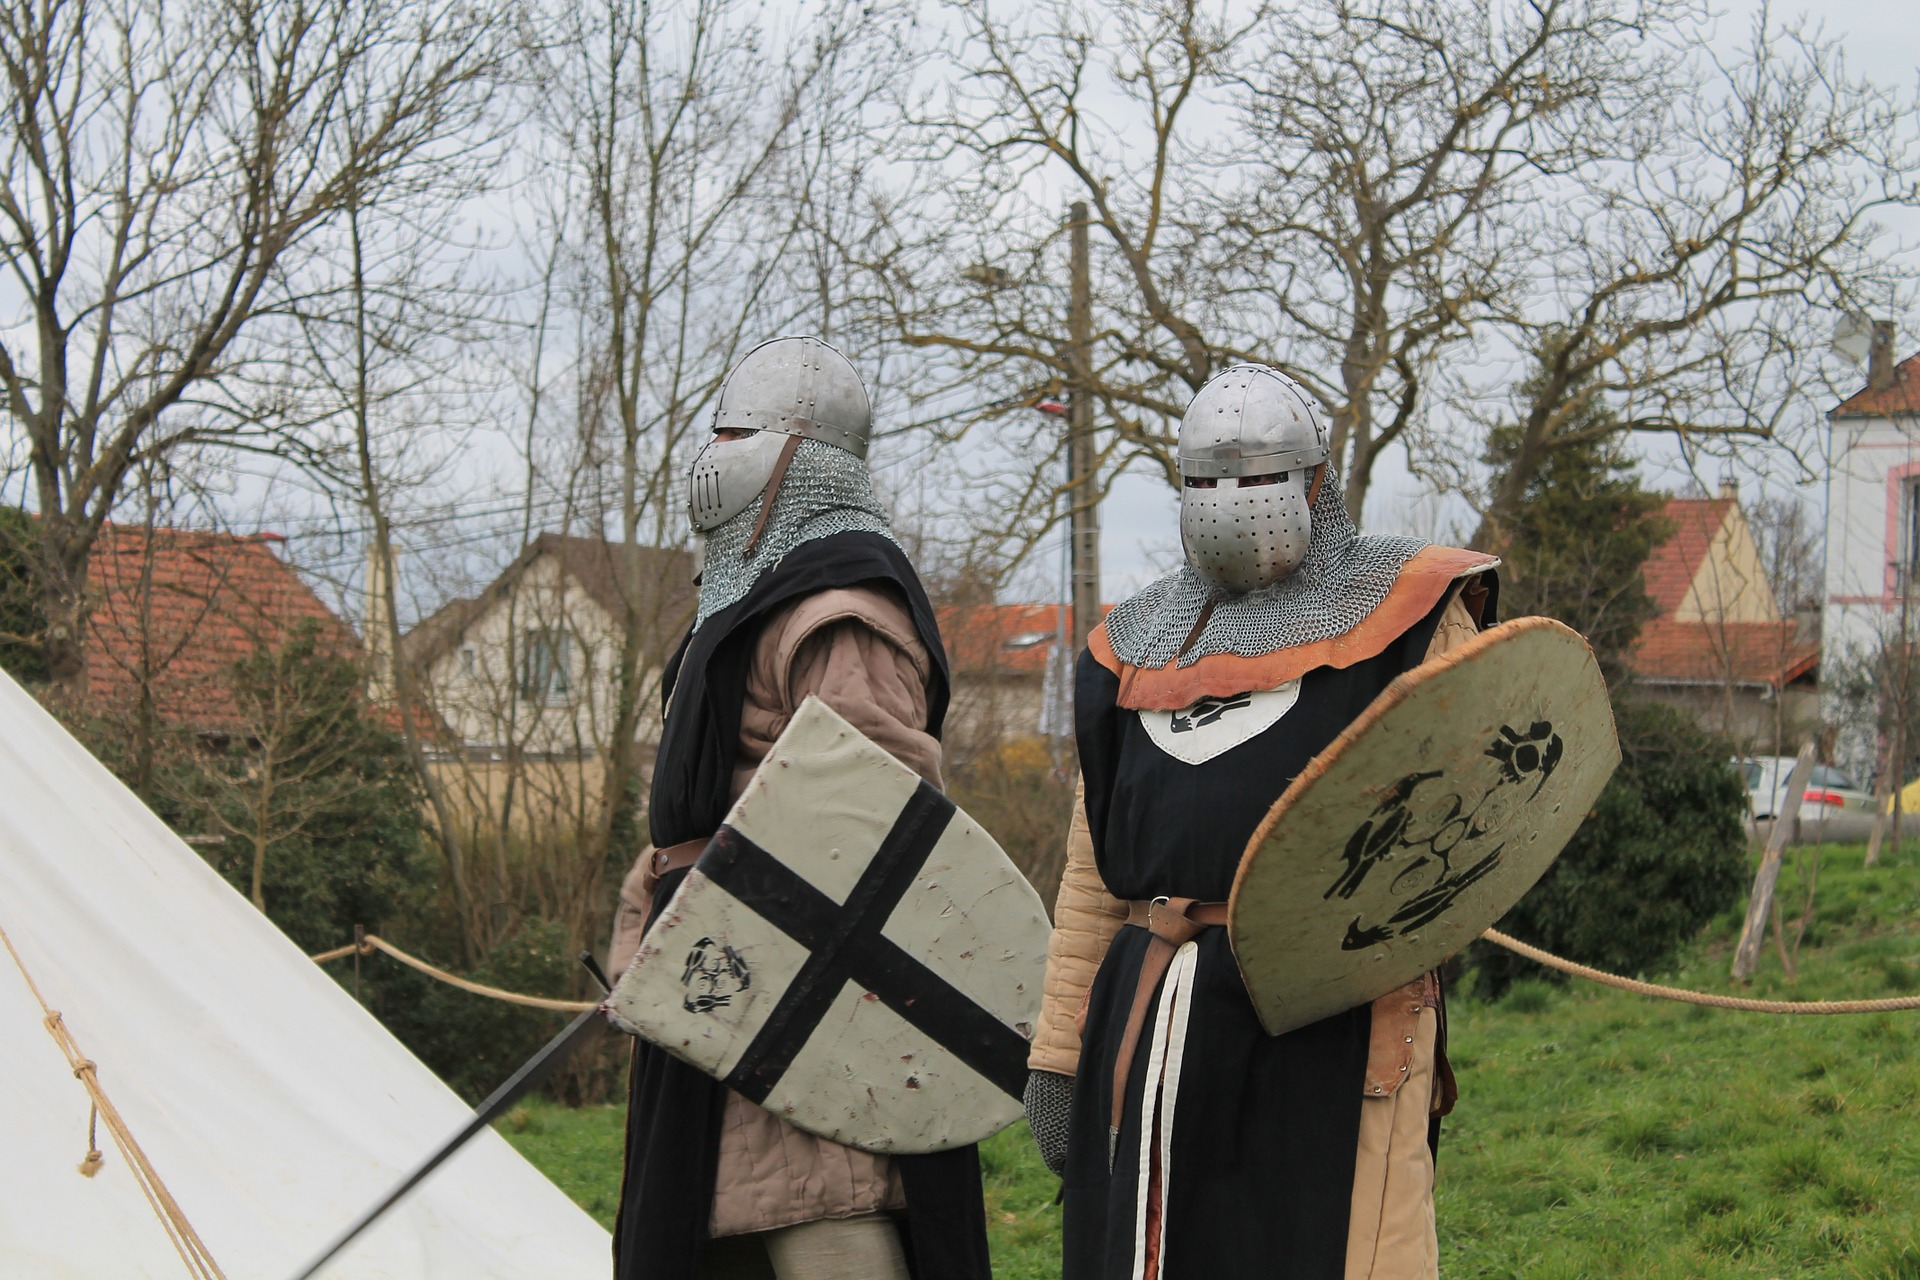 After 5 years, you will be fully covered like these knights